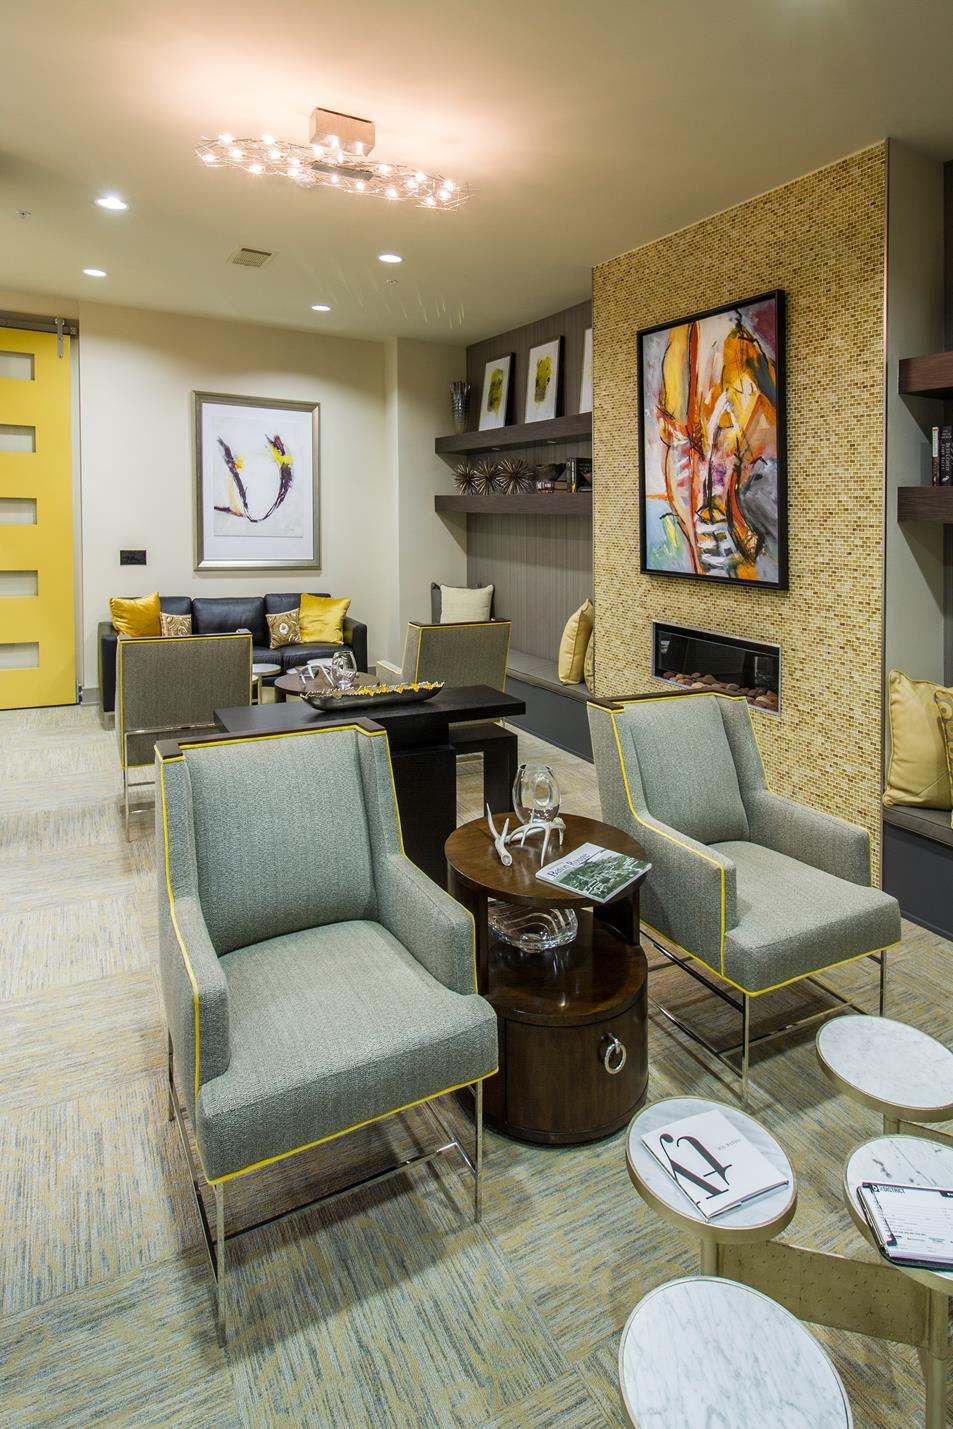 Luxurious Interiors at The District, Baton Rouge